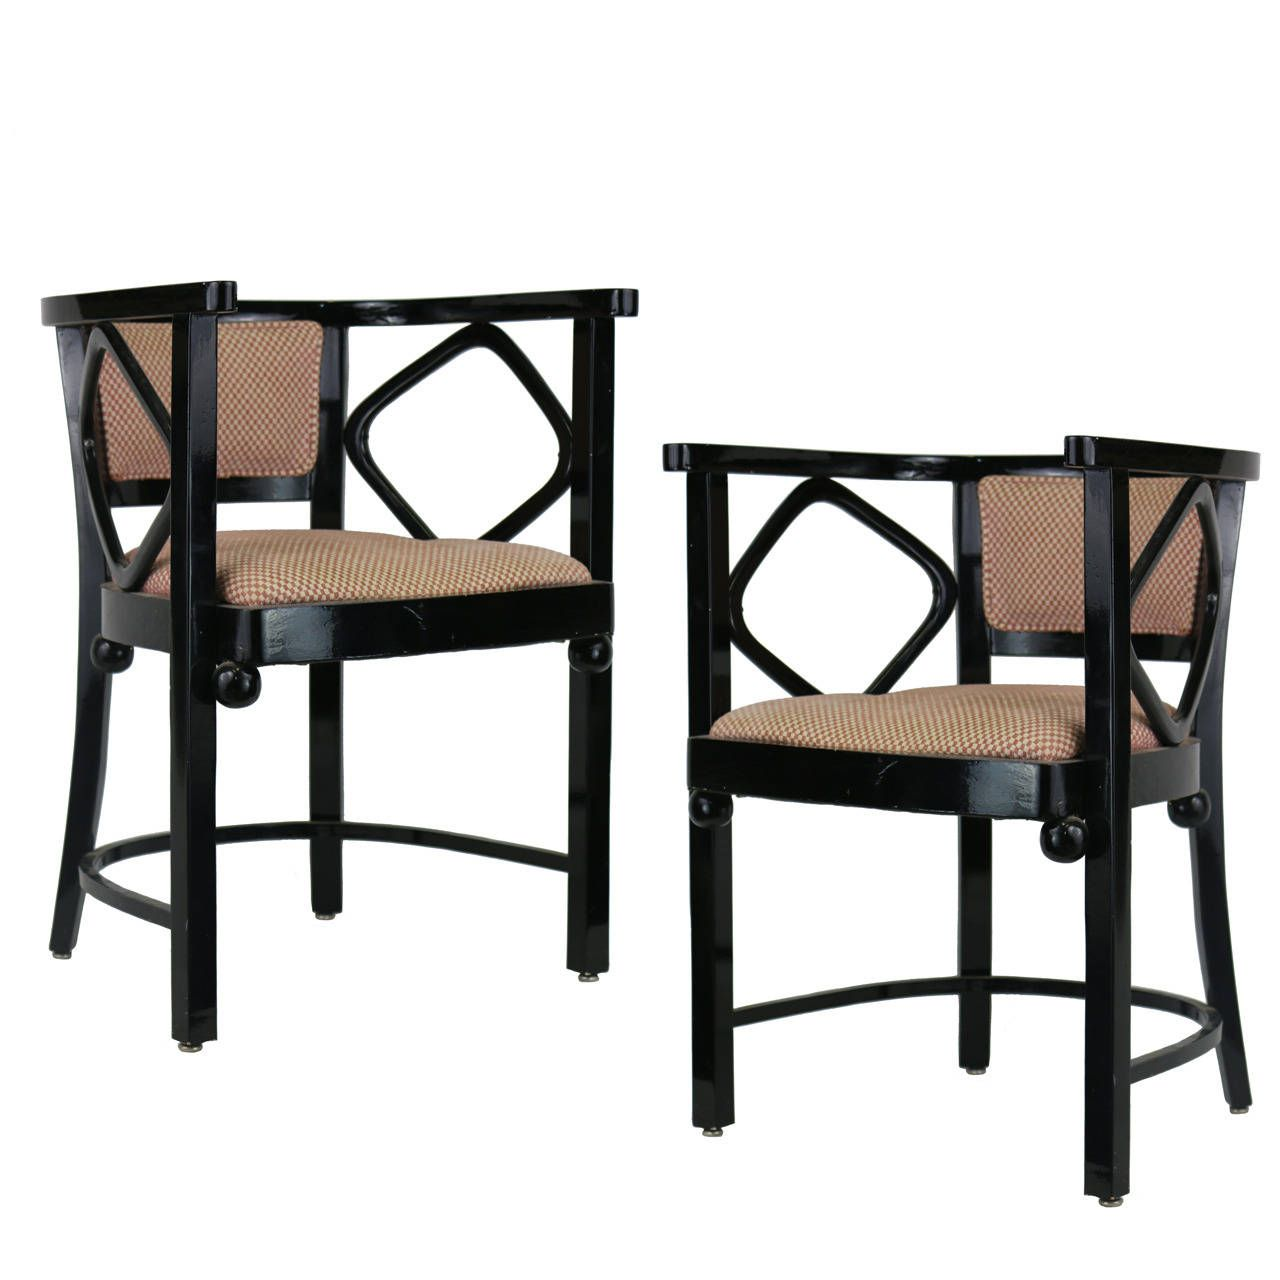 1960s Style Furniture 1960s pair of joseph hoffman fledermaus inspired chairs